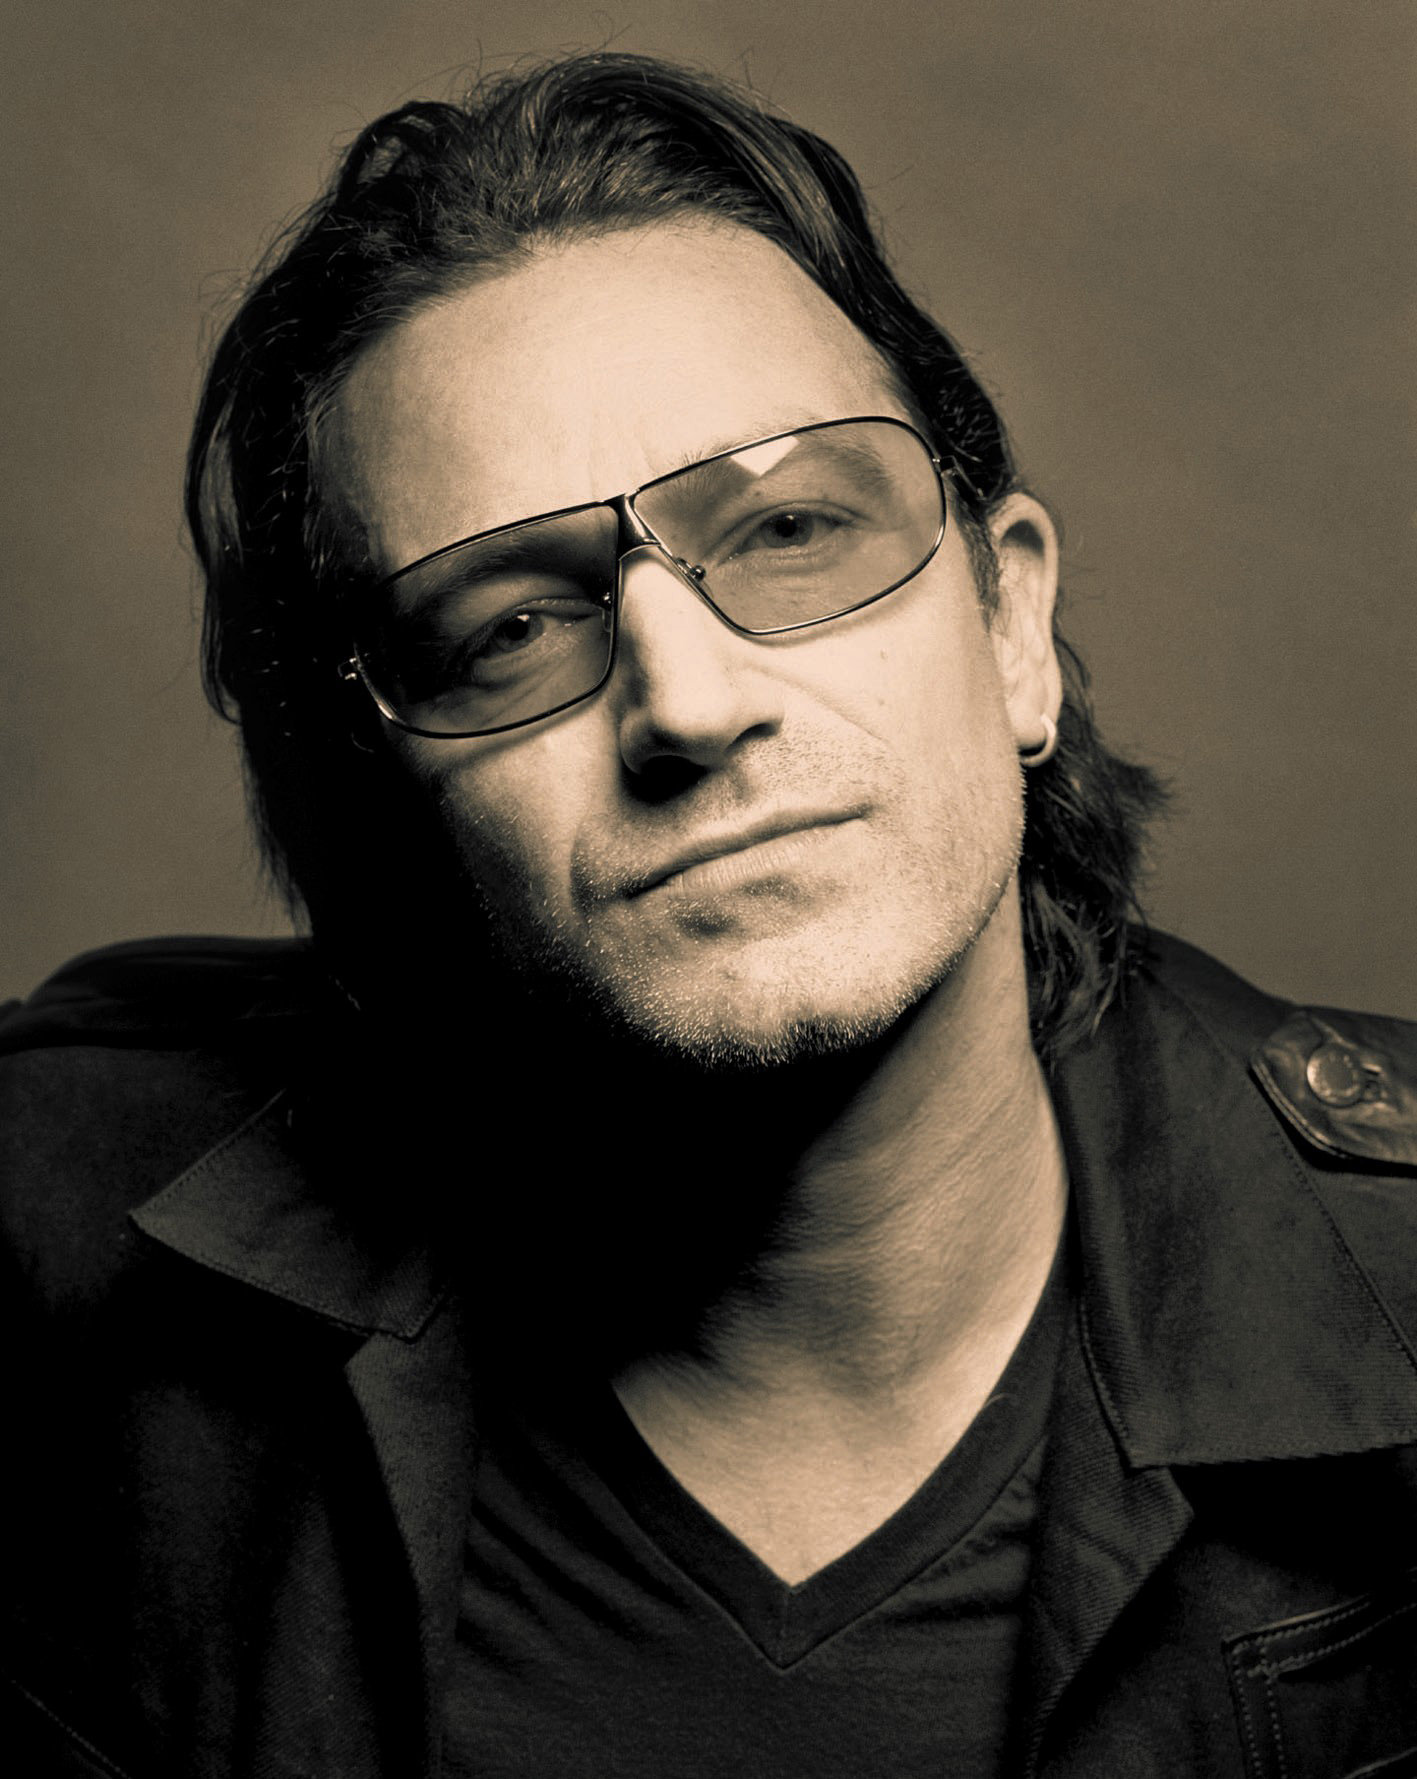 Mark Rodgers and Bono on Christian musical artists